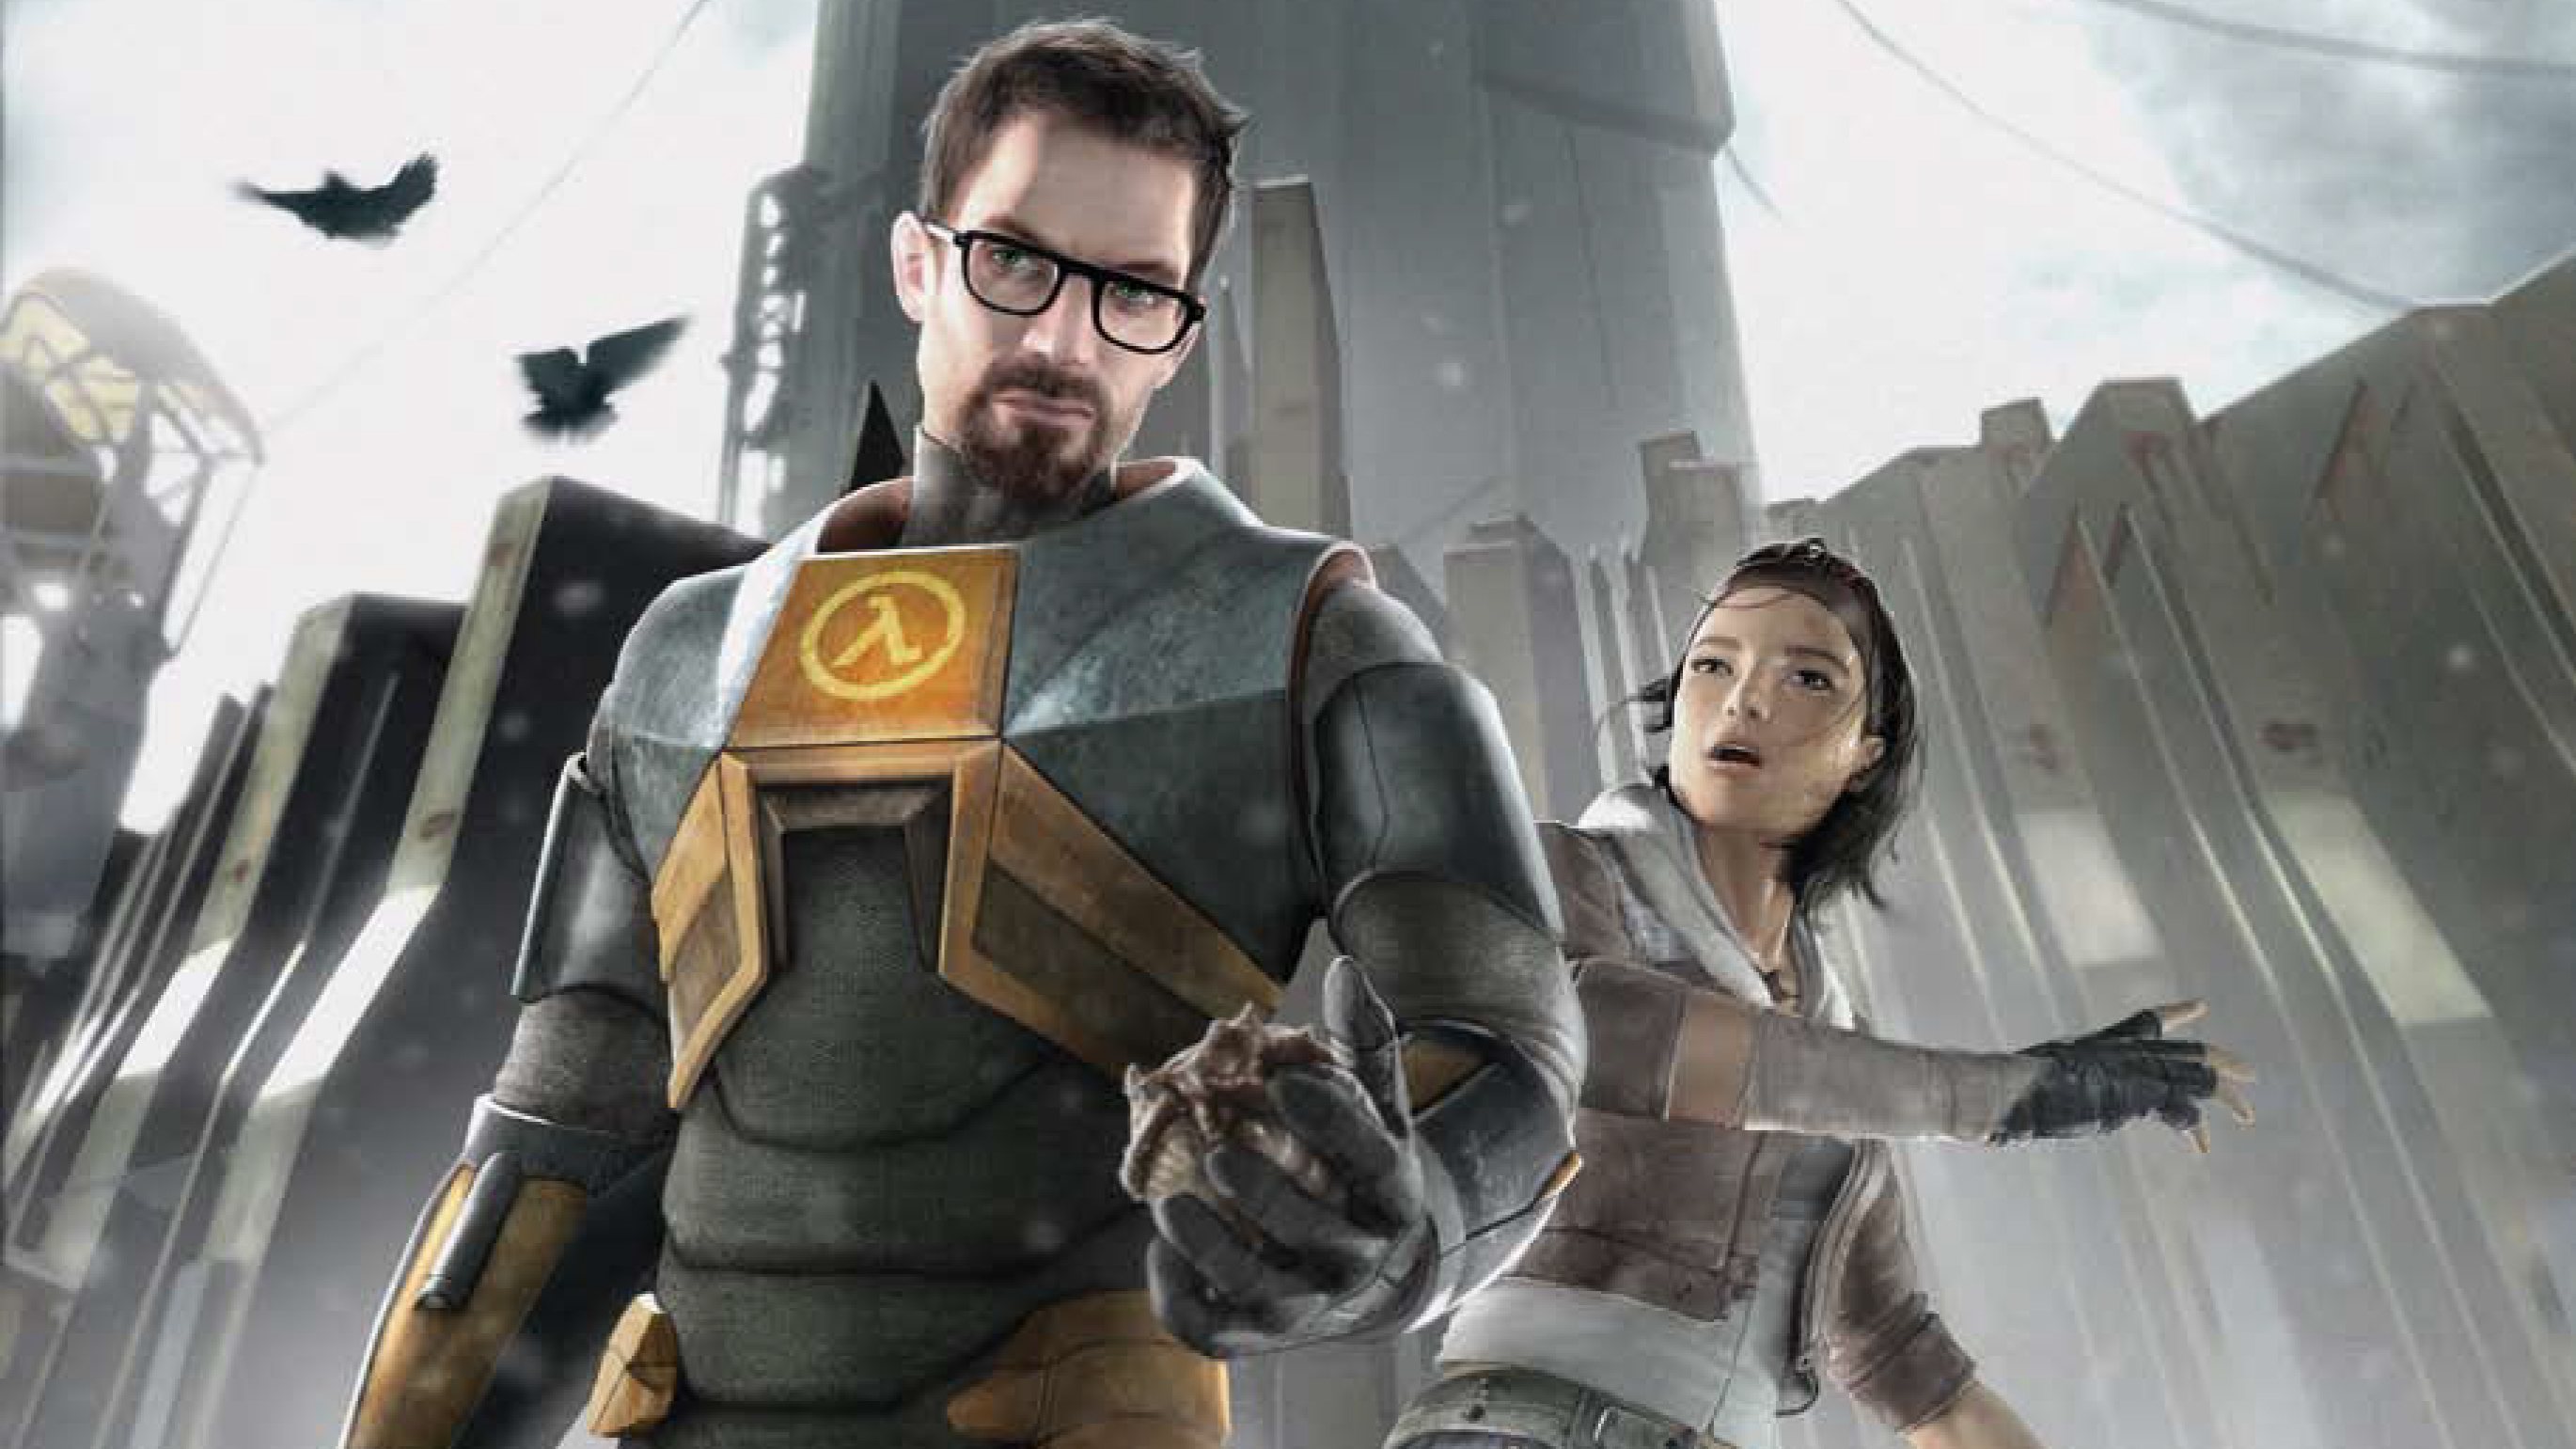 Half-Life 3 may be MIA – but a Half-Life VR game could still be in the works